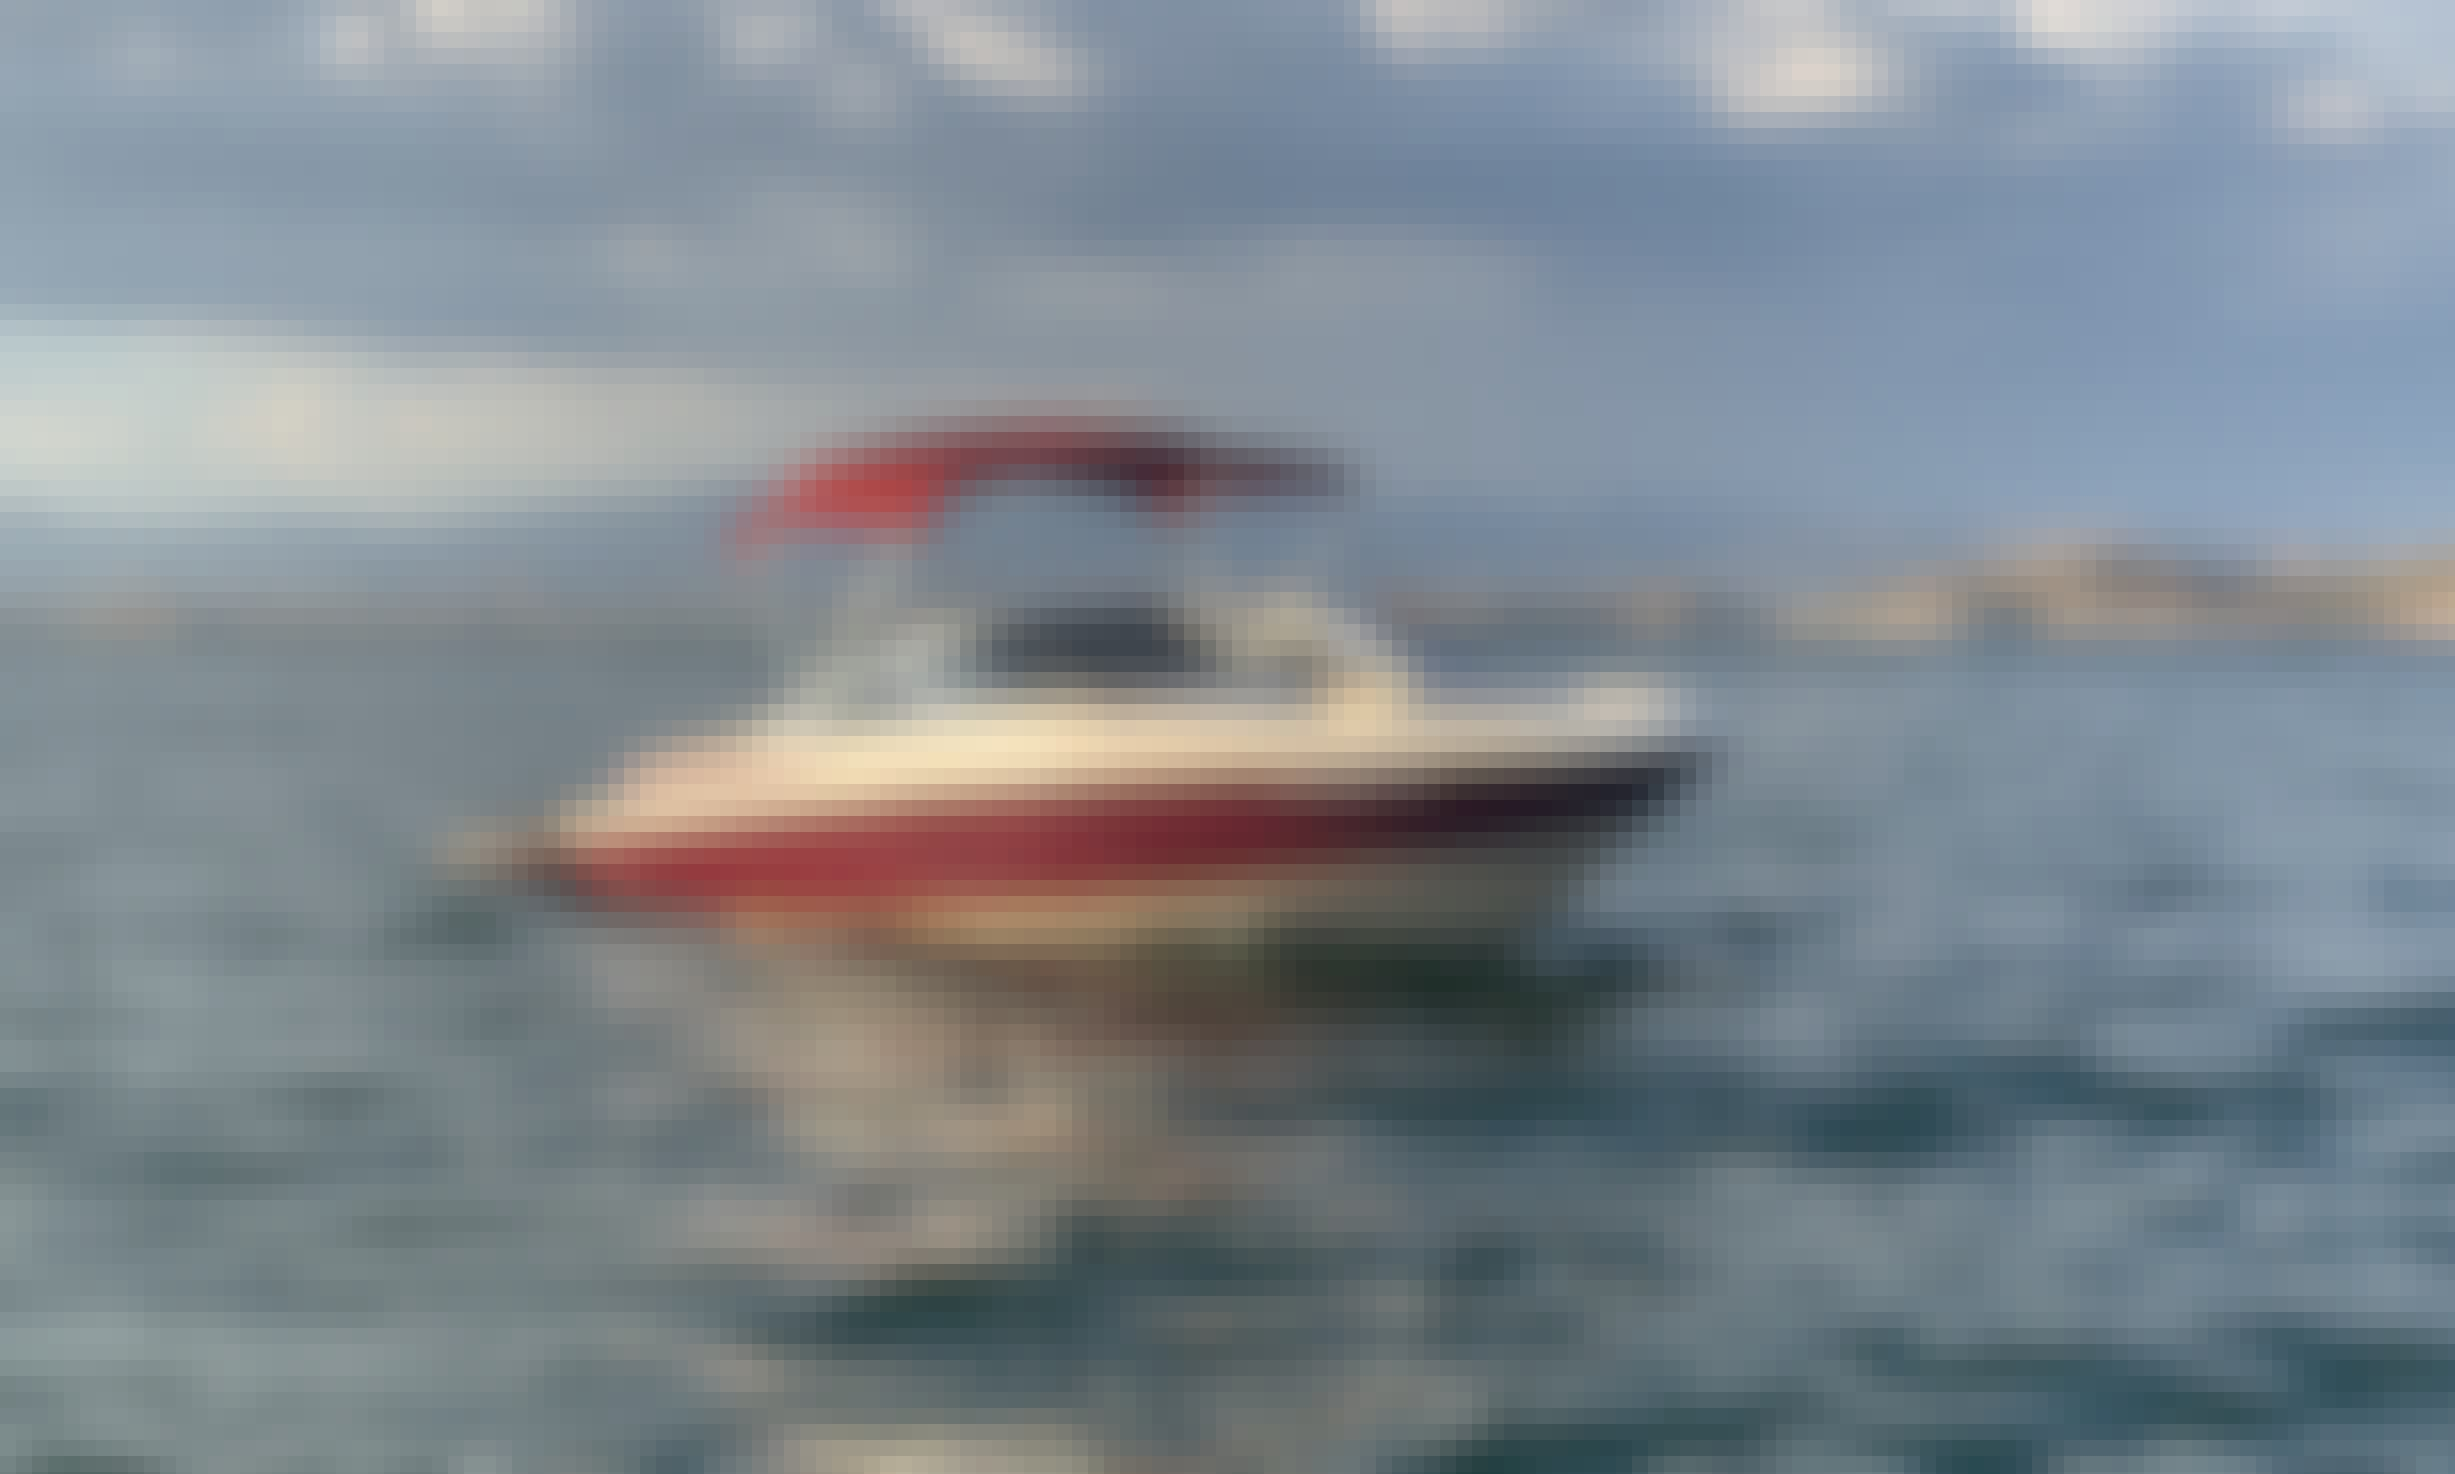 Rent a 19ft Maxum Boat in Saguaro/Canyon/Plesant - Will deliver boat to the lakes for you.